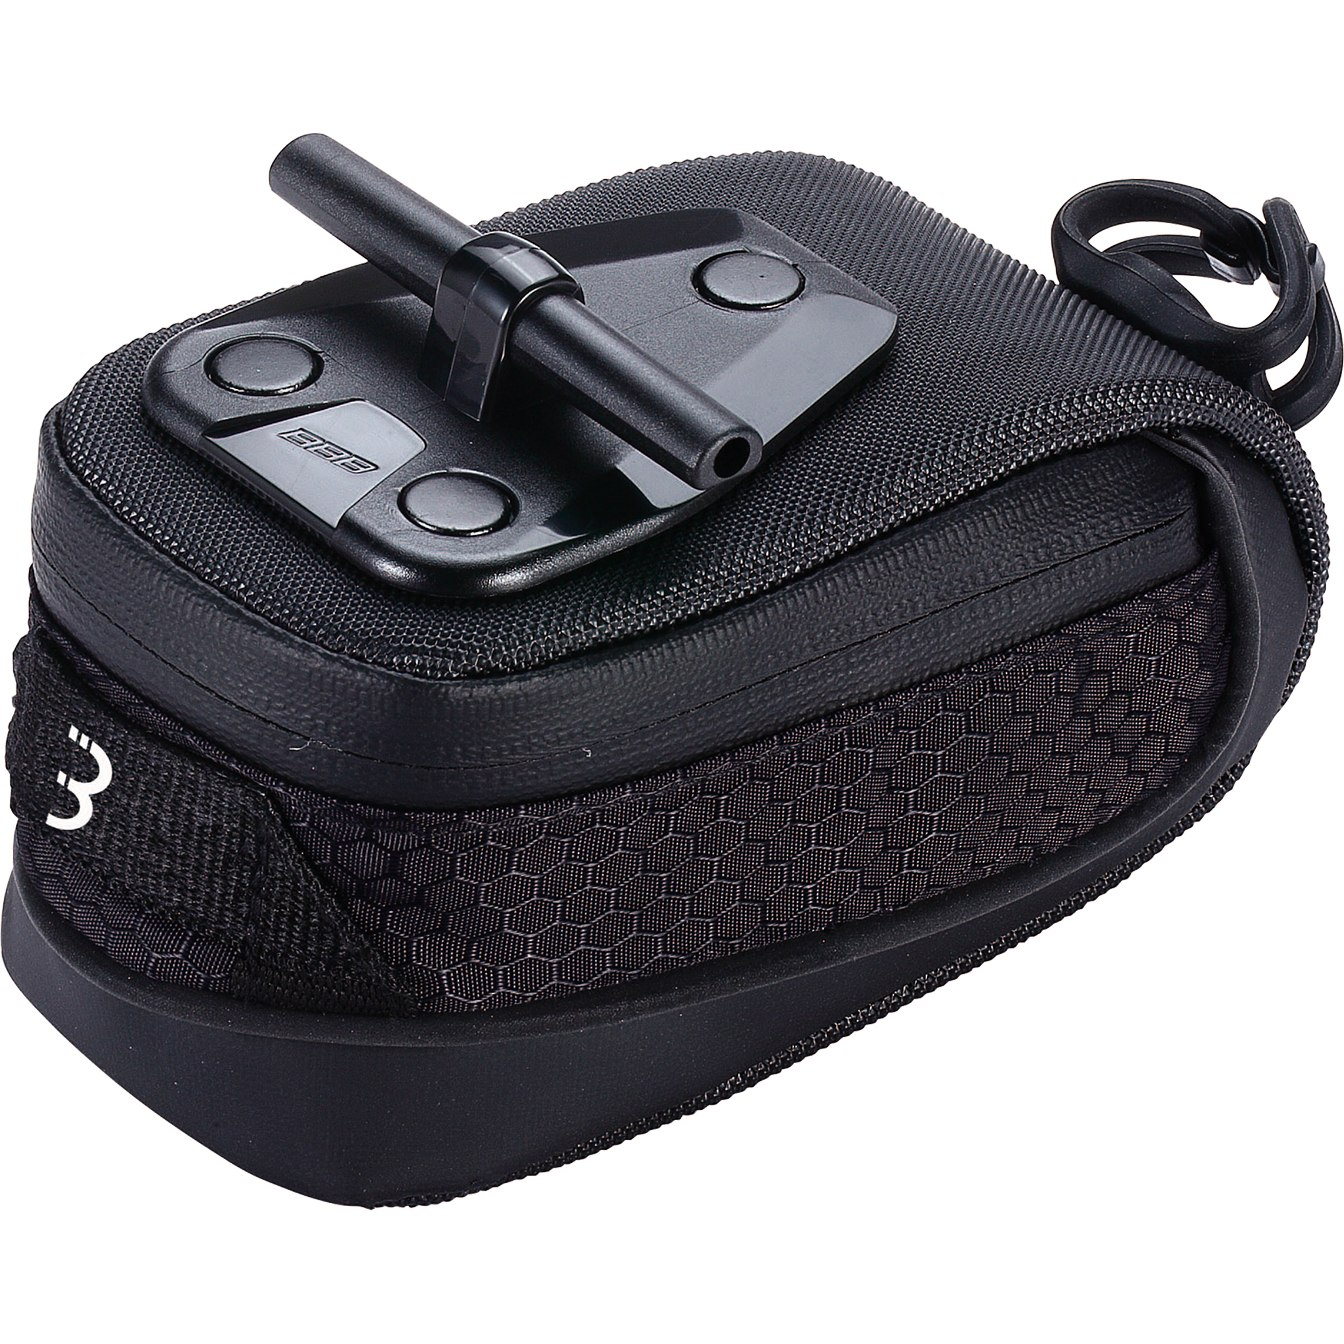 BBB Cycling StorePack BSB-12 S Saddle Bag